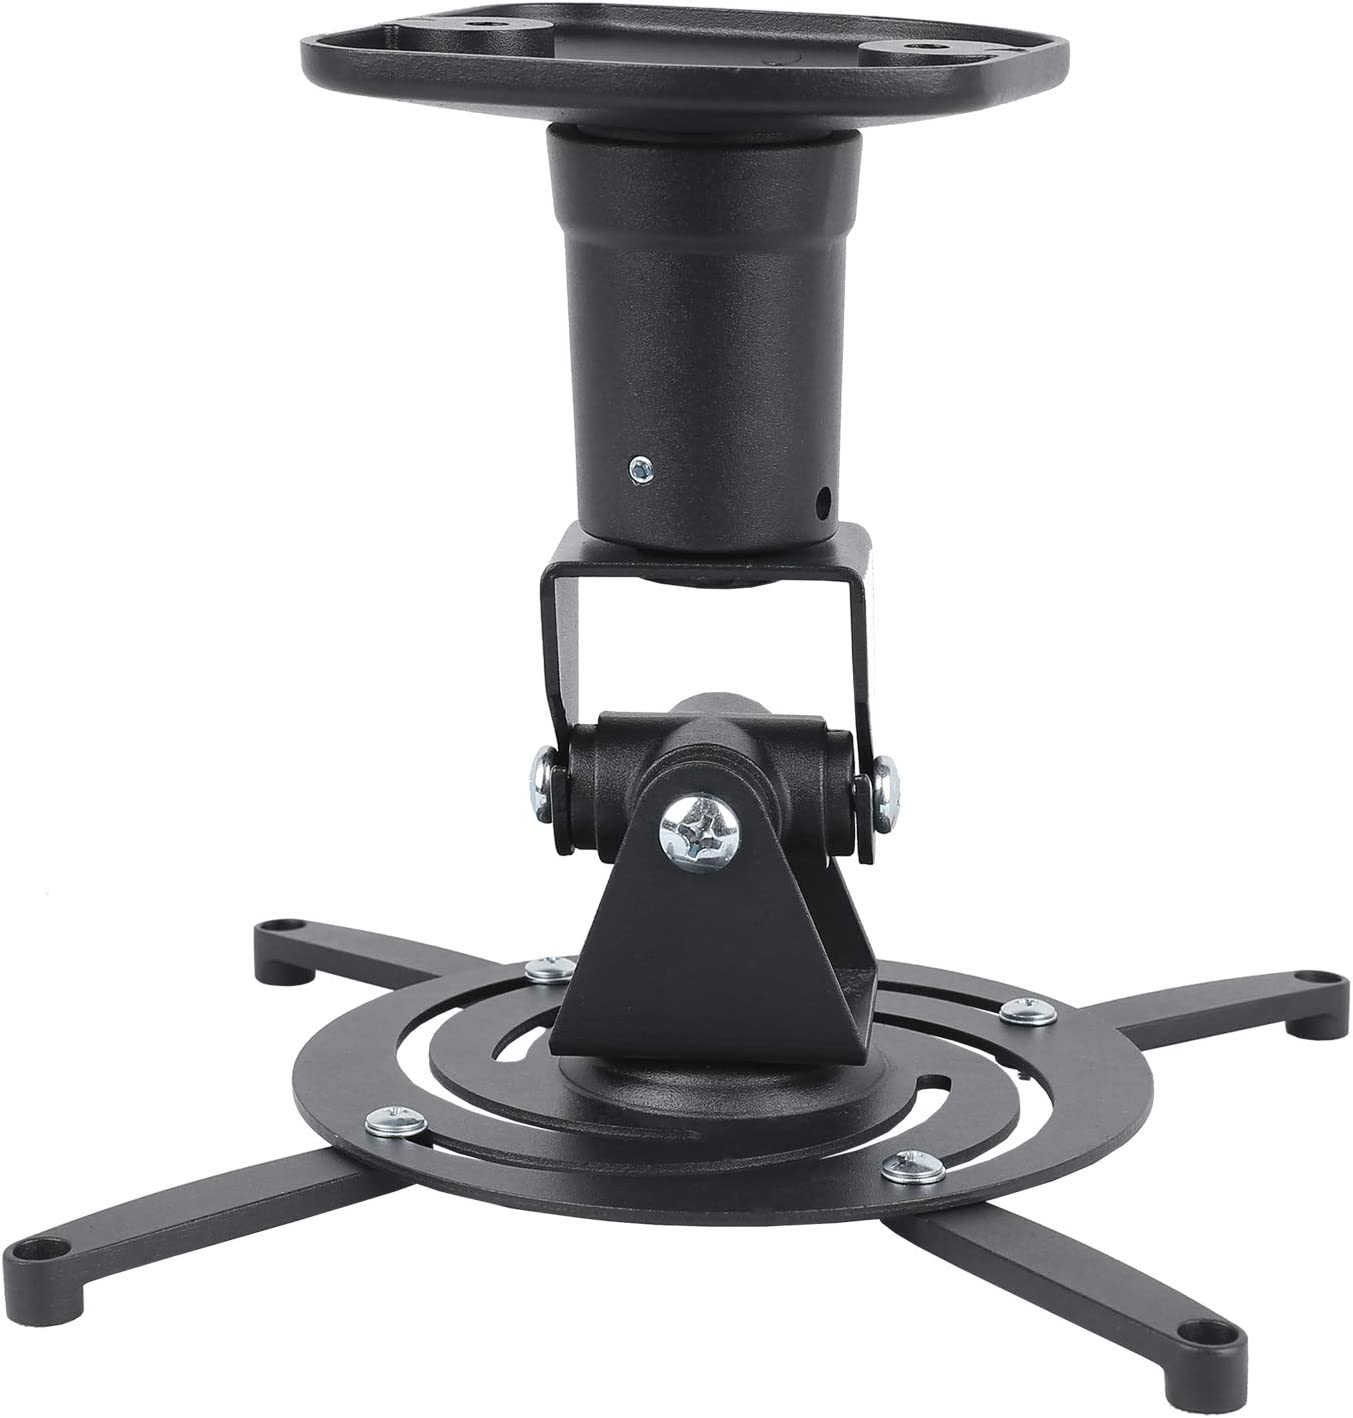 DYNAVISTA Full Motion Universal Ceiling Projector Mount Bracket with Adjustable Extendable Arms Rotating Swivel Tilt Mount for Home and Office Projector (Black)